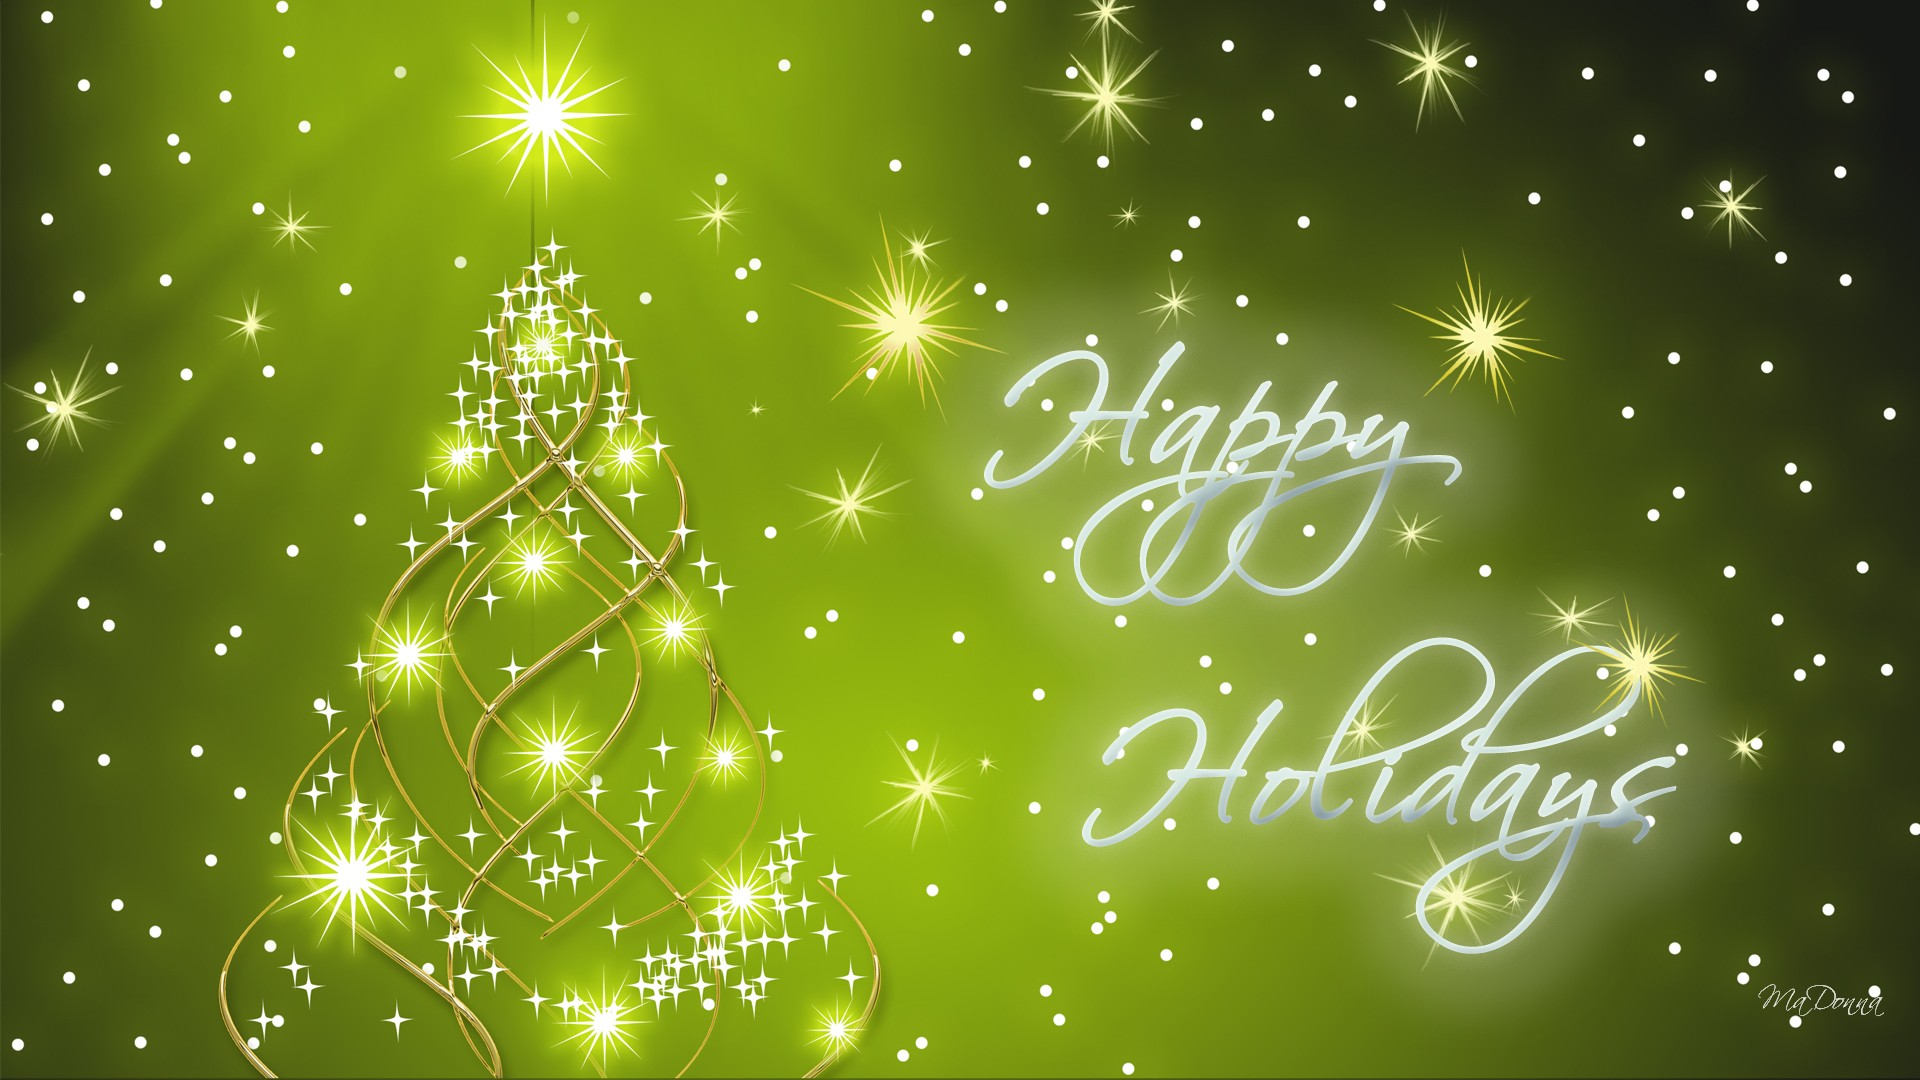 Happy Holiday Wallpapers 8